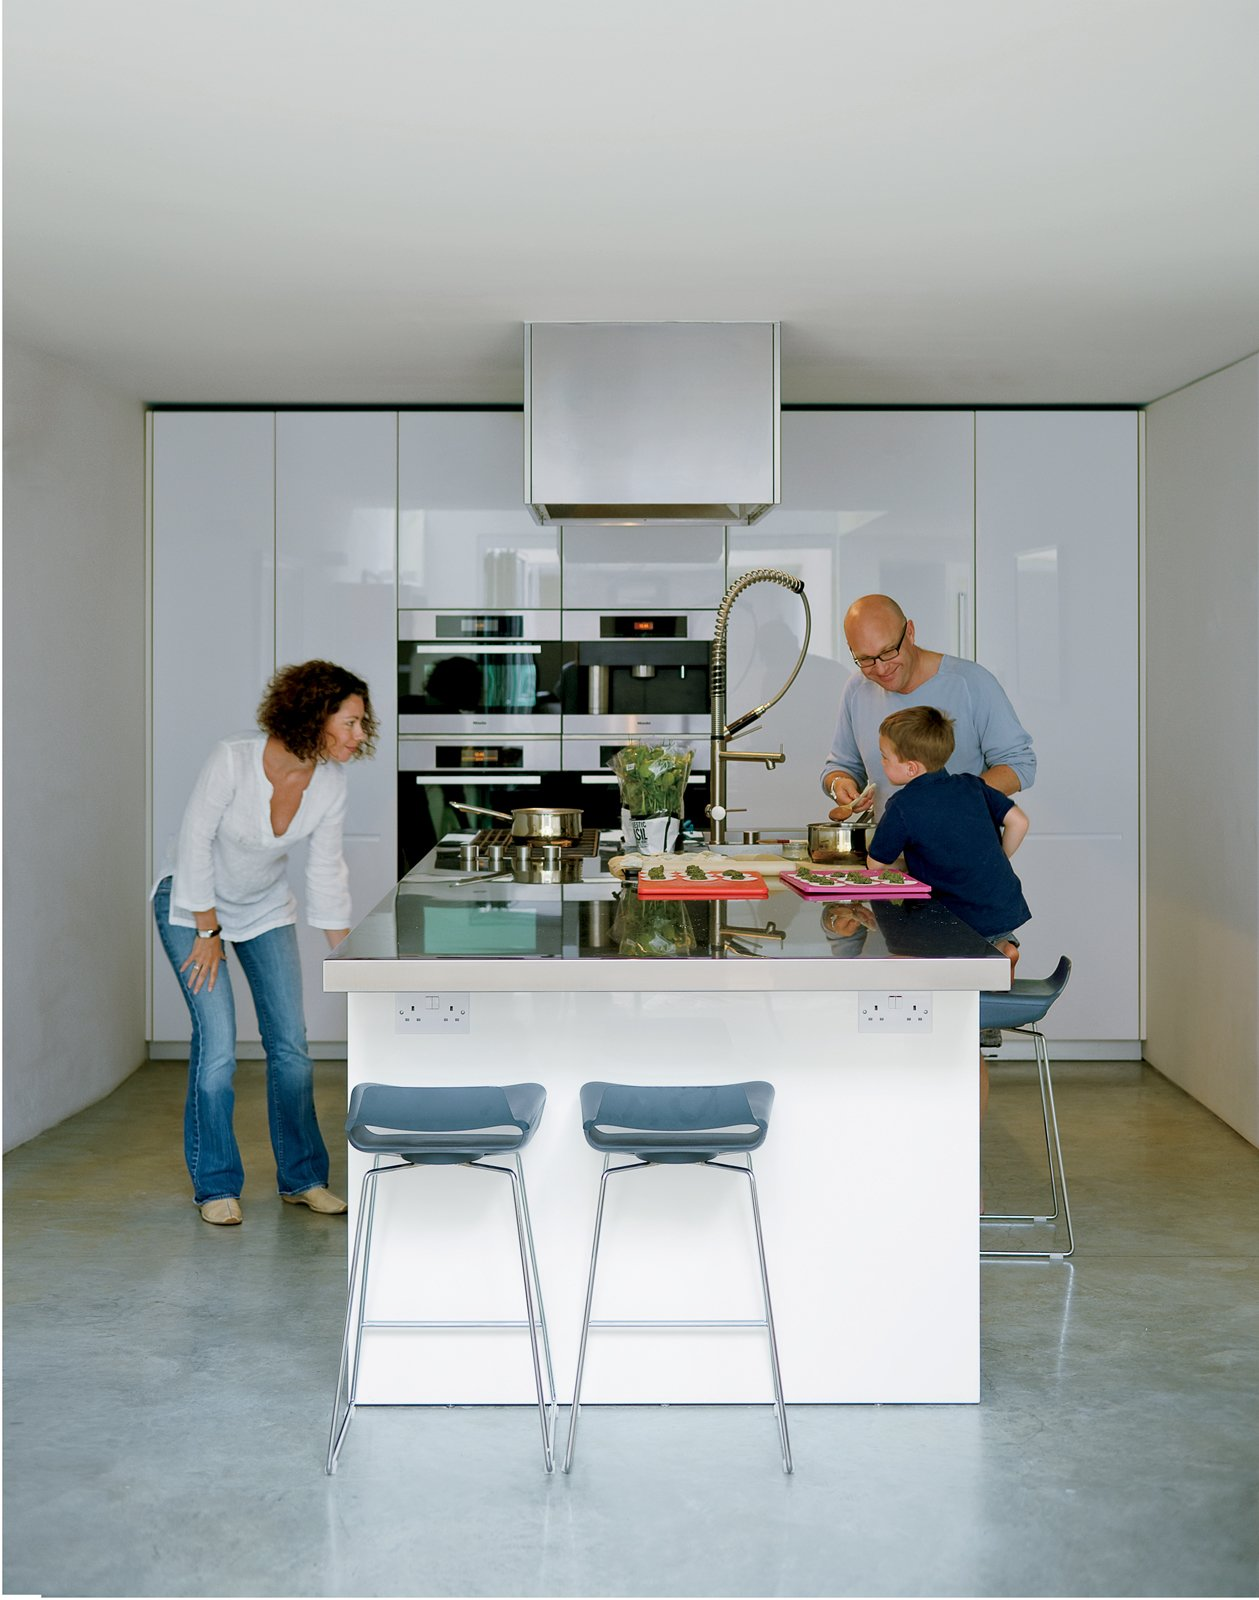 Bruce and Kirsty loved the idea of a kitchen island rather than traditional work surfaces around the walls. Bruce fancies himself a chef and hates to have his back to everyone when he's cooking. This island, from the Boffi LT line designed by Piero Lissoni, allows guests to gather around for impromptu sushi rolling or casual breakfasts. Tagged: Kitchen, Wall Oven, and White Cabinet.  Photo 5 of 10 in Composite Index